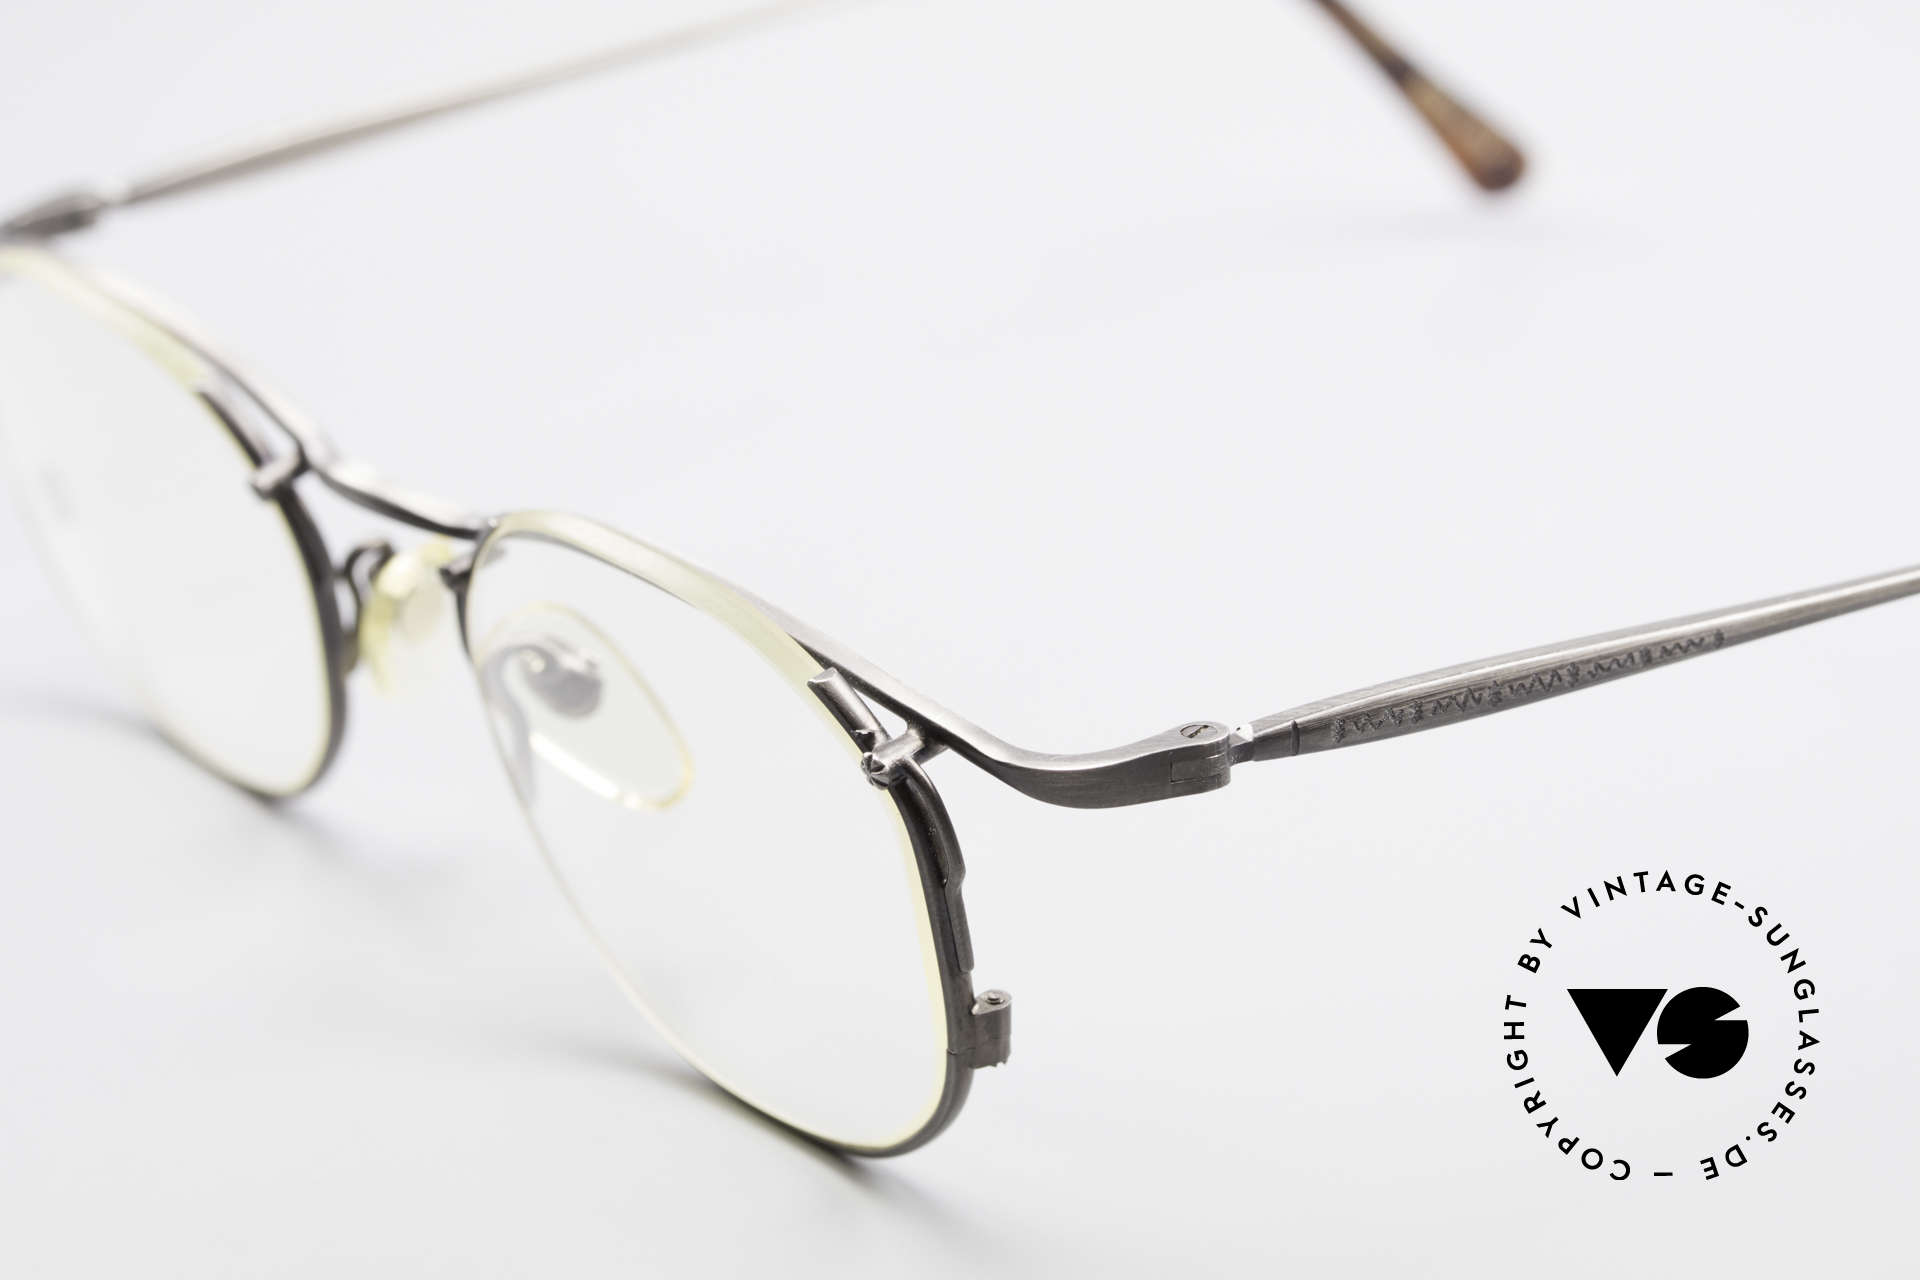 Matsuda 2856 Extraordinary Vintage Frame, frame with costly engravings (distinctive Matsuda), Made for Men and Women